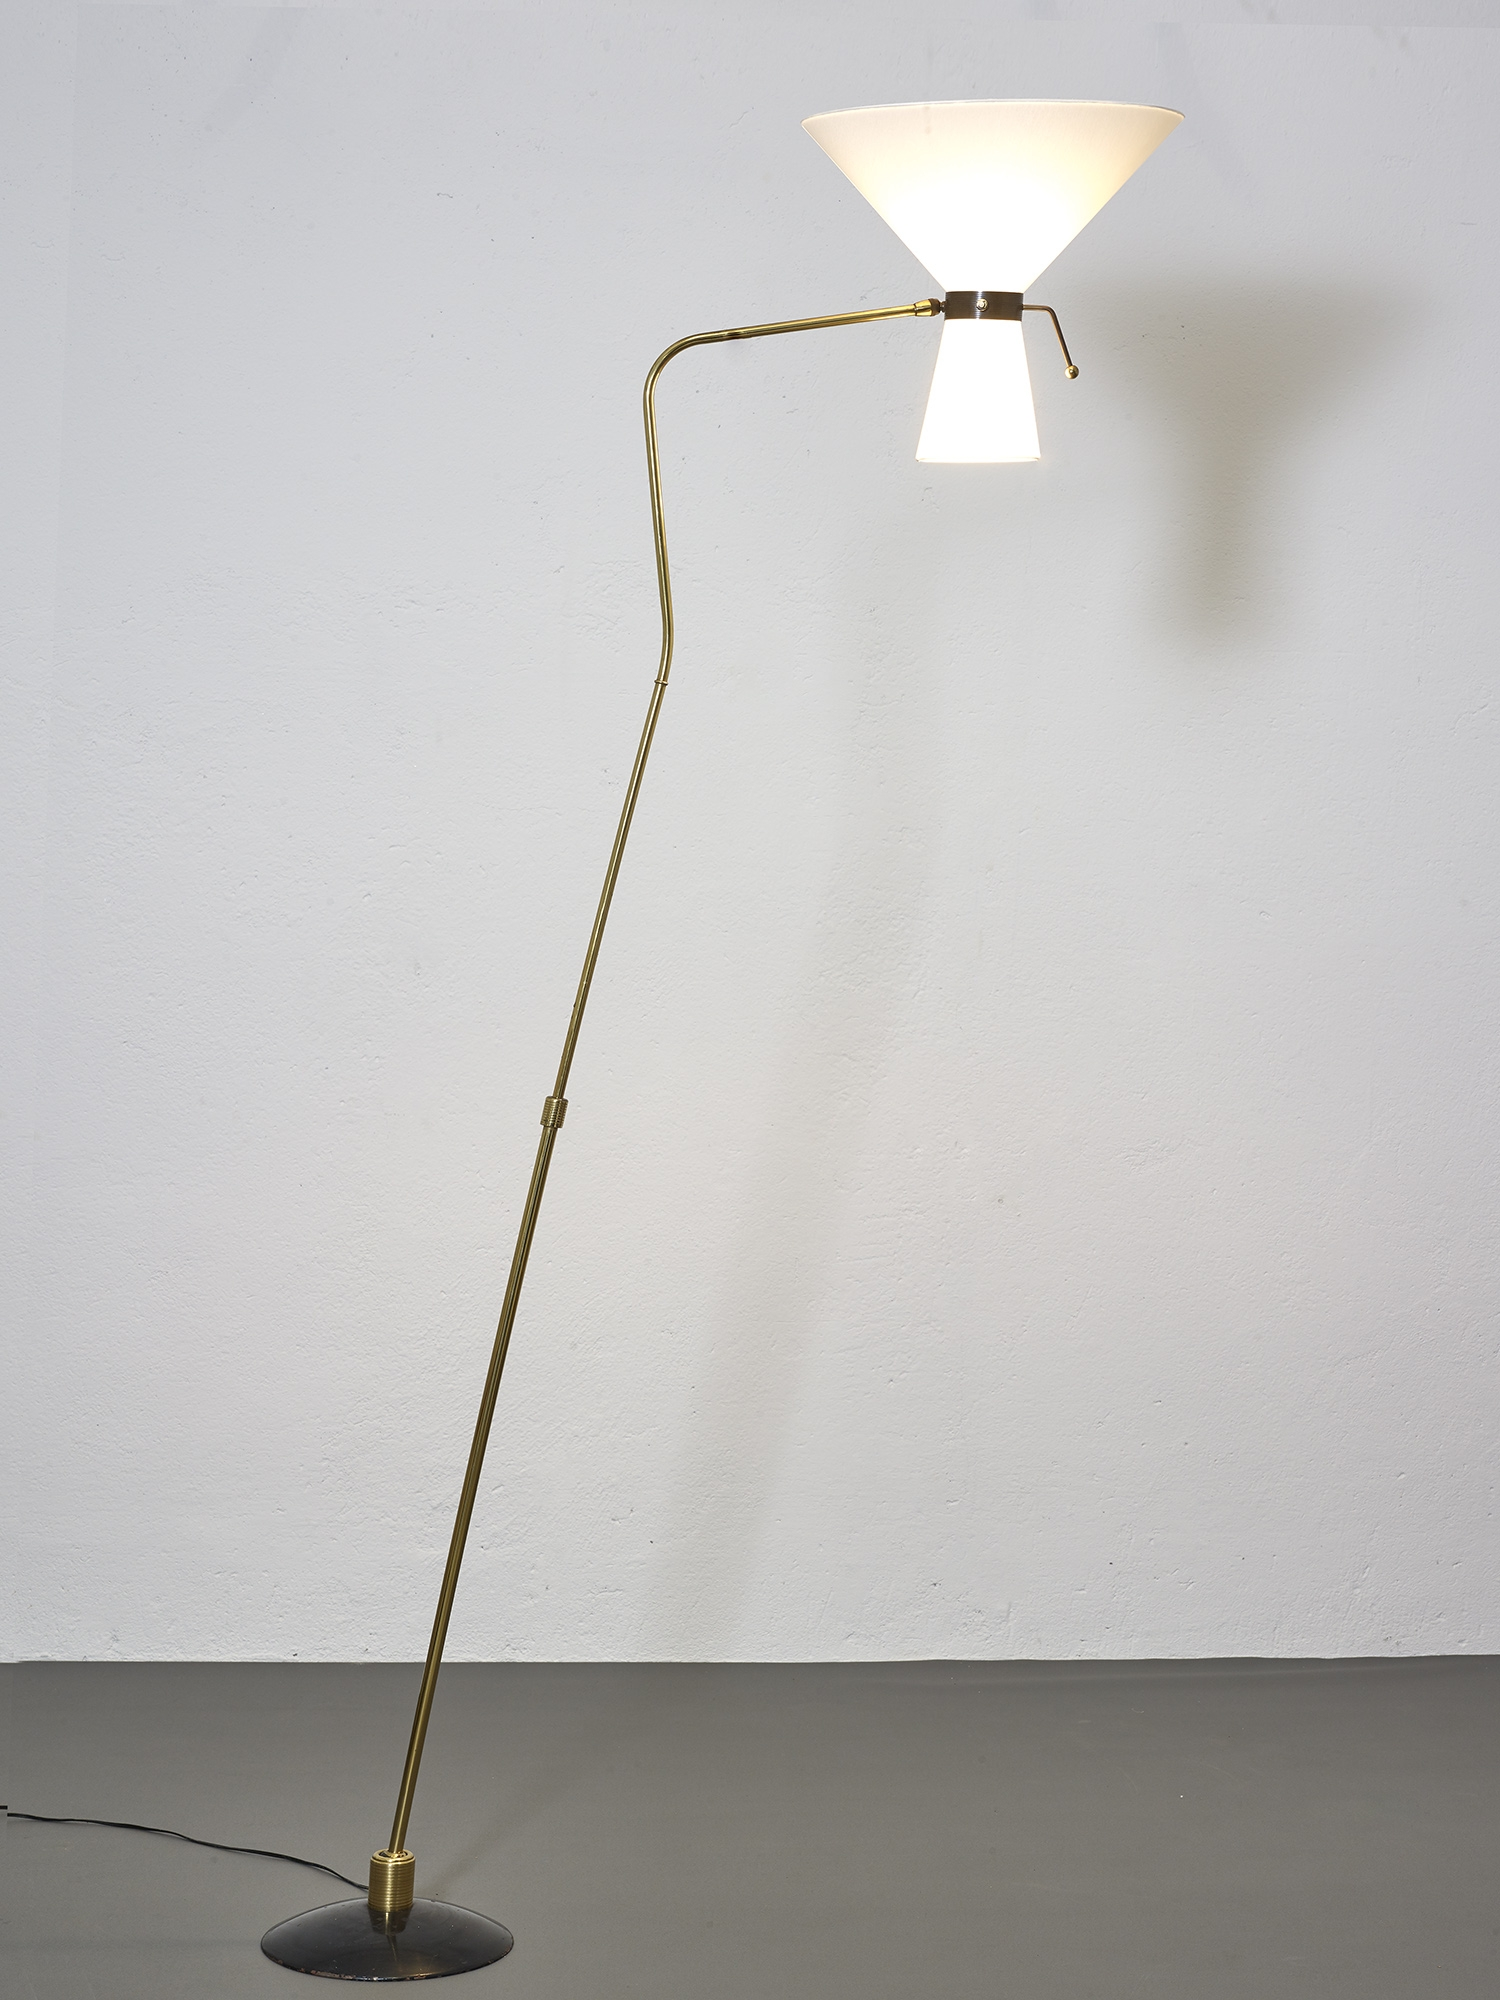 1950-floor-lamp-by-arlus-image-03